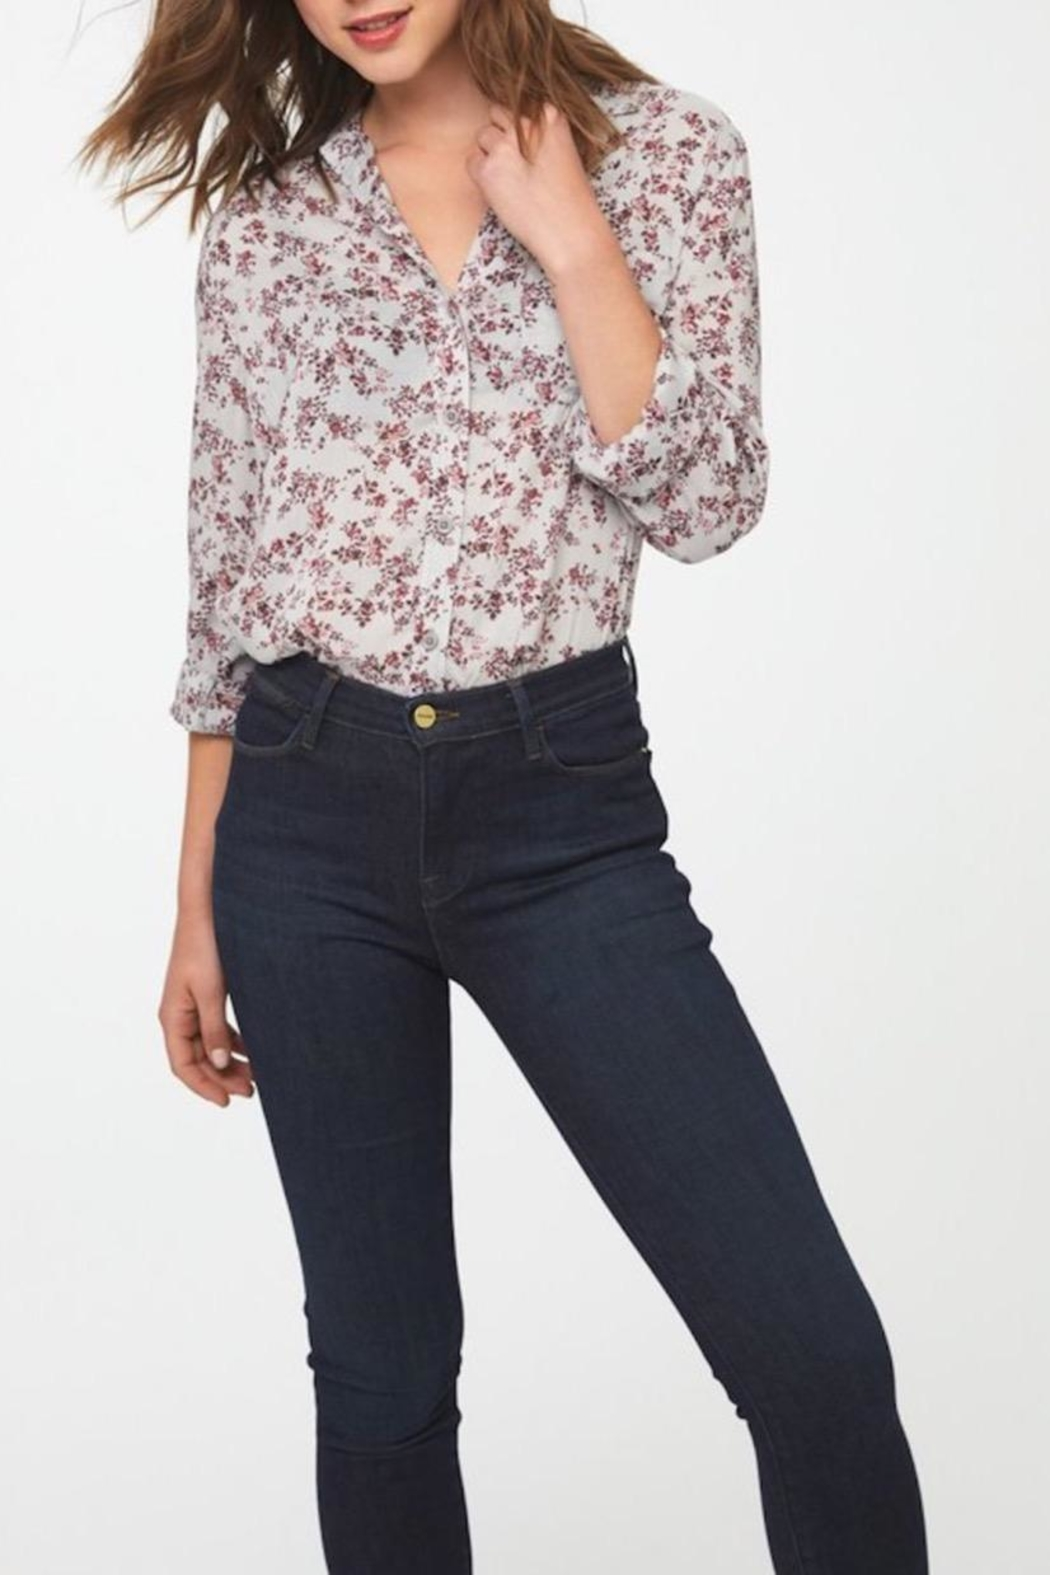 beachlunchlounge Alanna Floral Shirt - Side Cropped Image